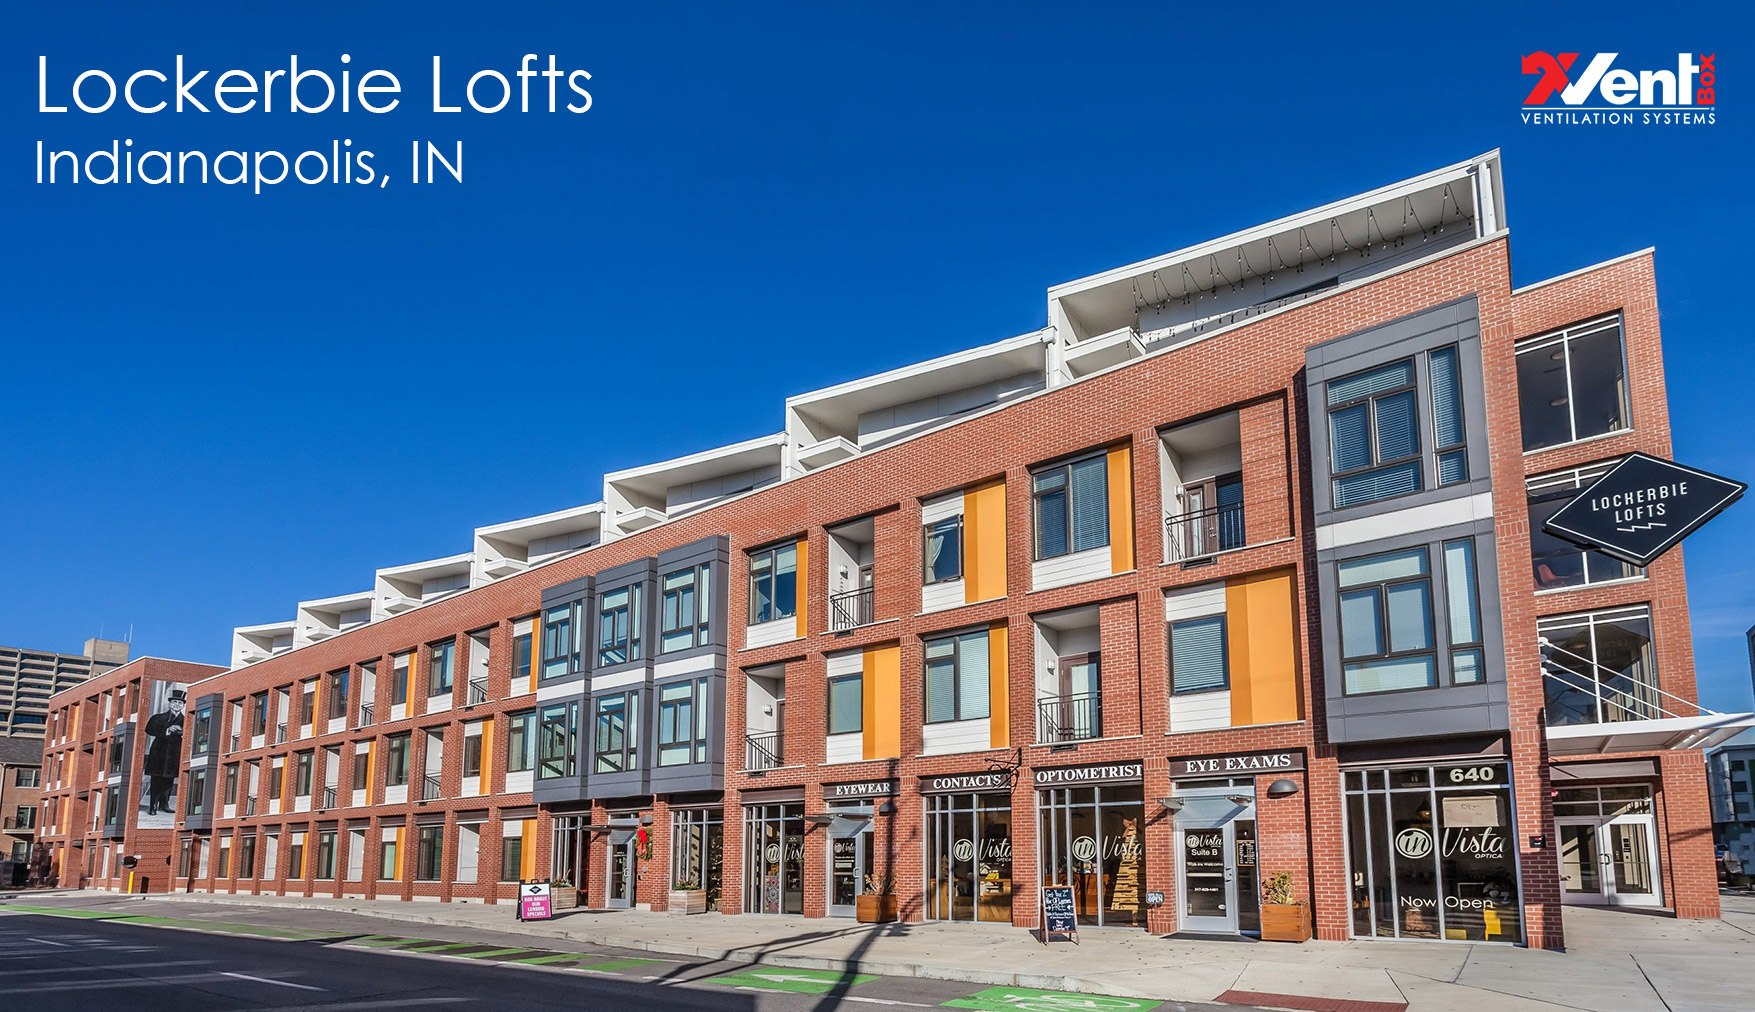 Lockerbie Lofts